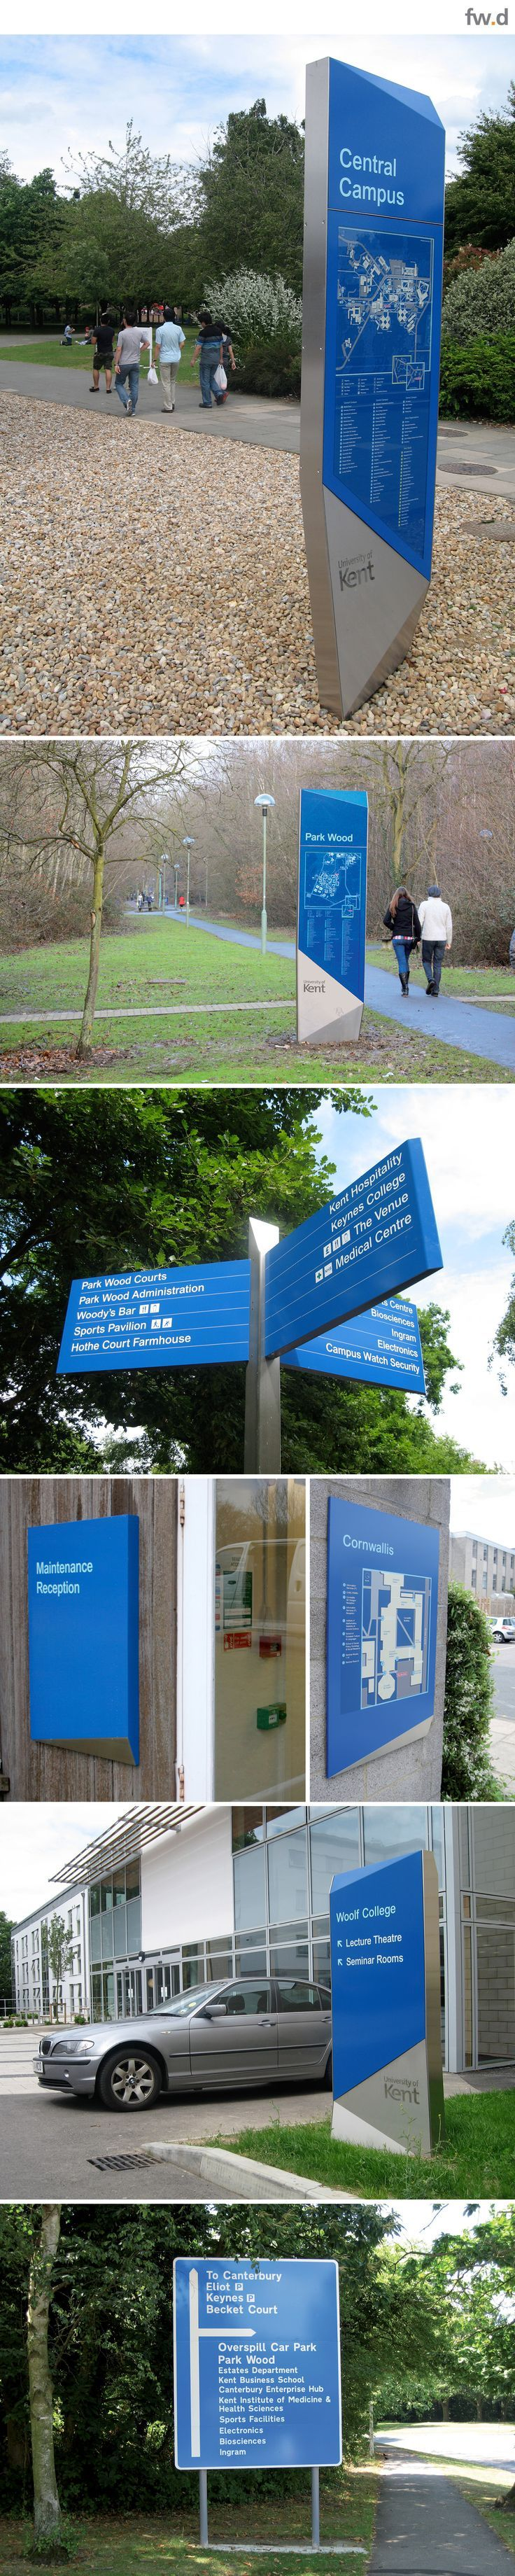 University of Kent campus wayfinding & signage design by fwdesign. Click image for full profile and visit the slowottawa.ca boards >> http://www.pinterest.com/slowottawa/: